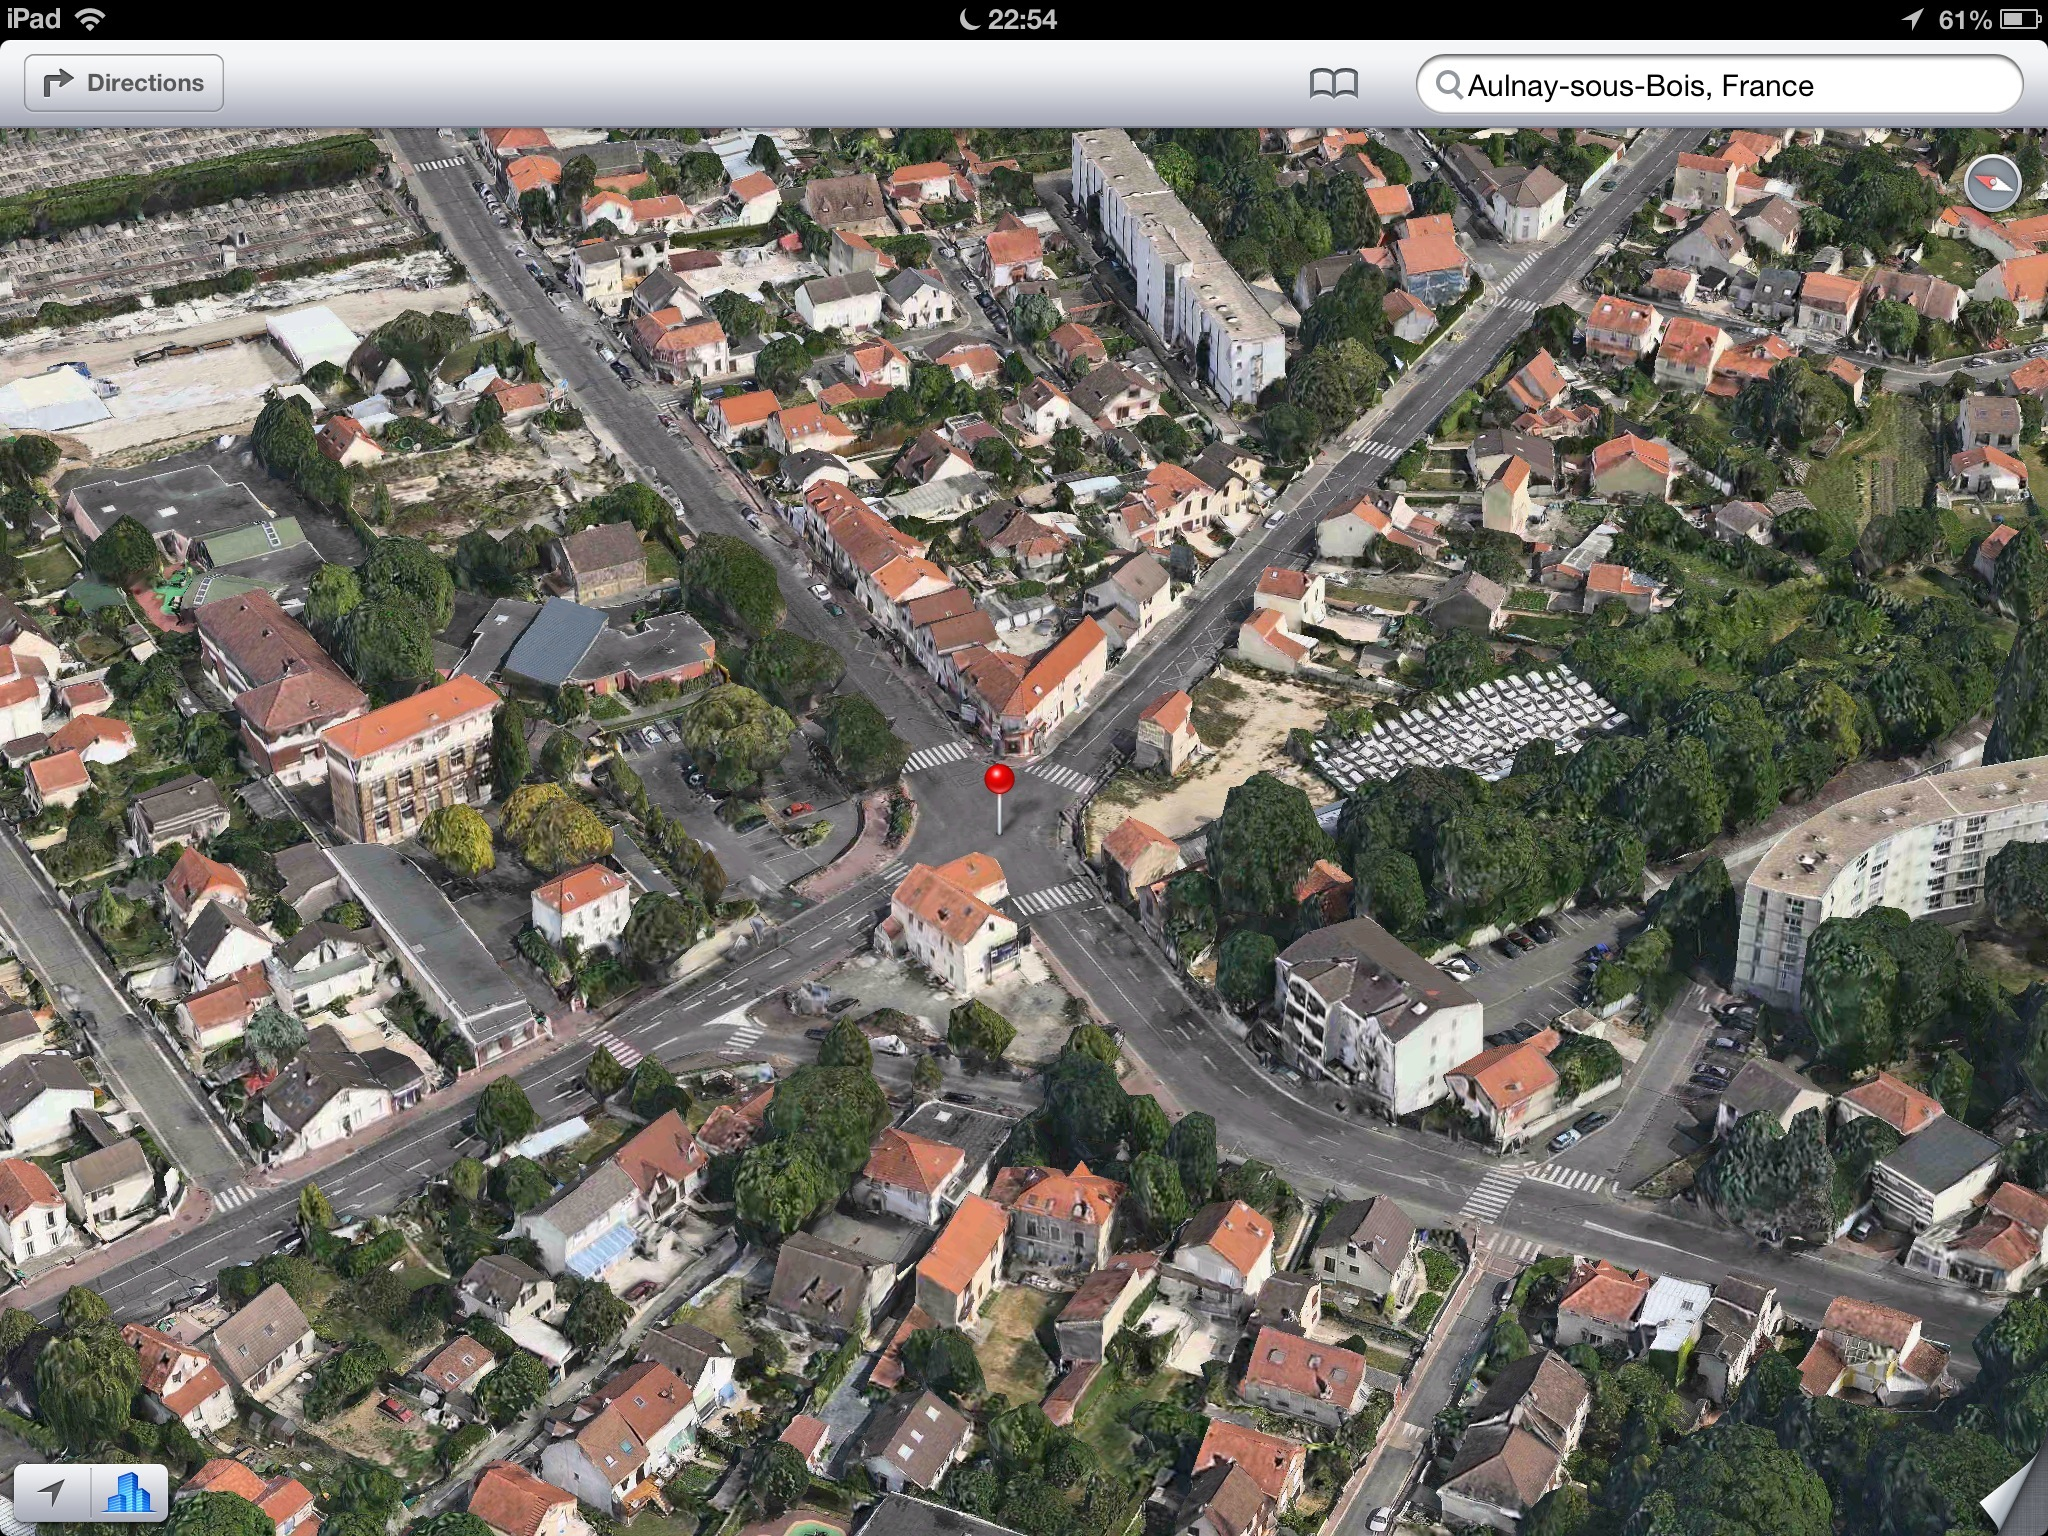 Apple Maps (Flyover, Aulnay-sous-Bois, France)